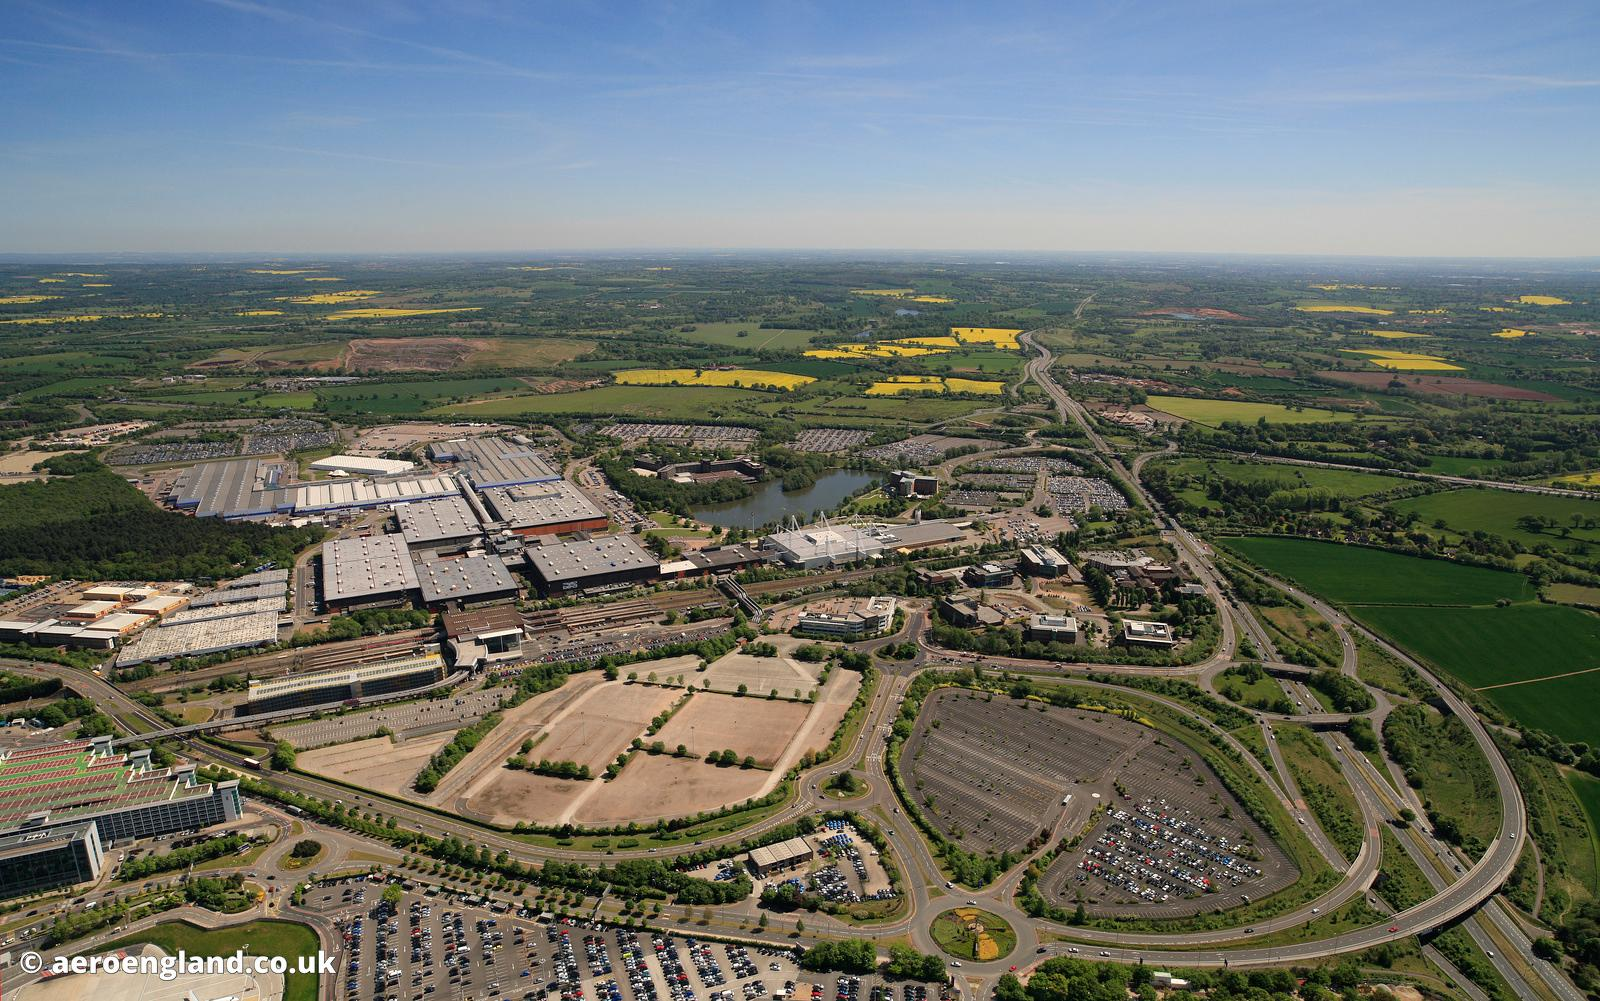 aerial photograph of the National Exhibition Centre (NEC) in Birmingham West Midlands UK..